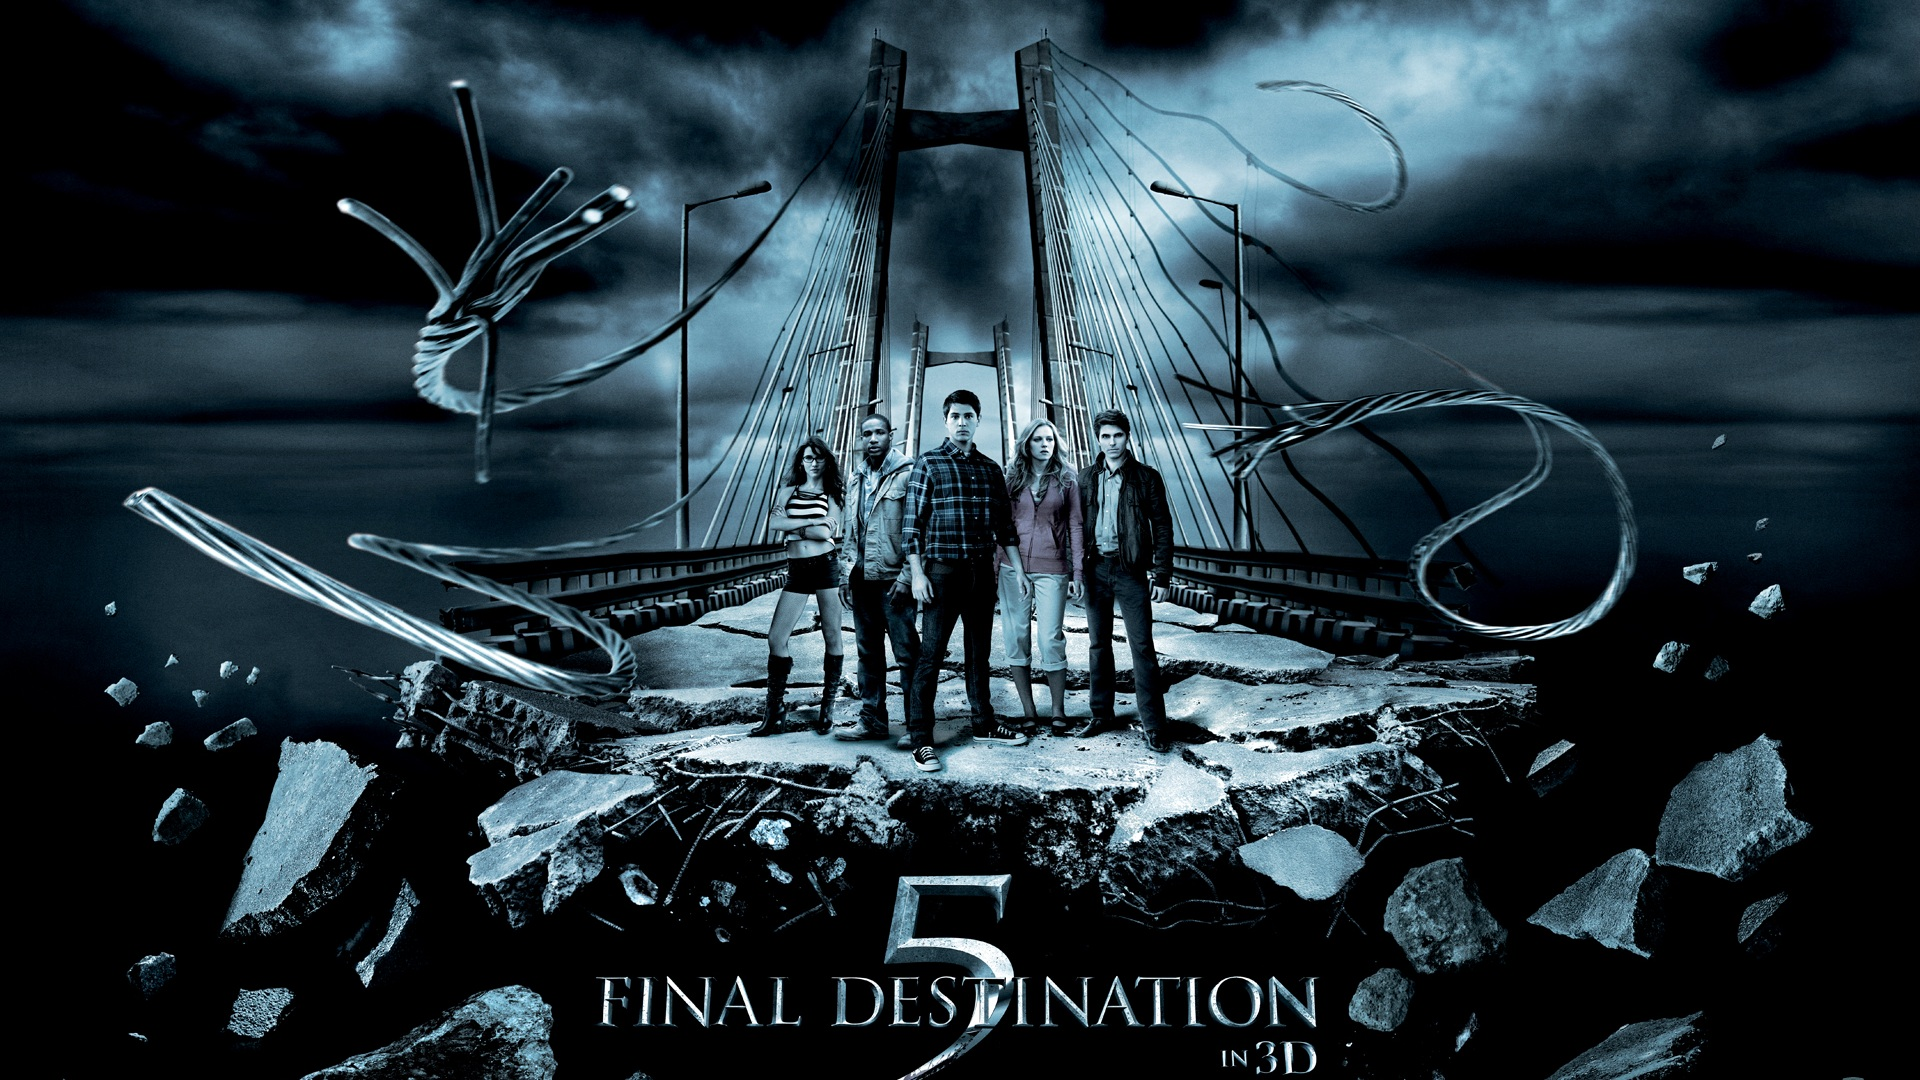 Iphone 5s Wallpaper Fall Wallpaper Final Destination 5 Hd 1920x1200 Hd Picture Image